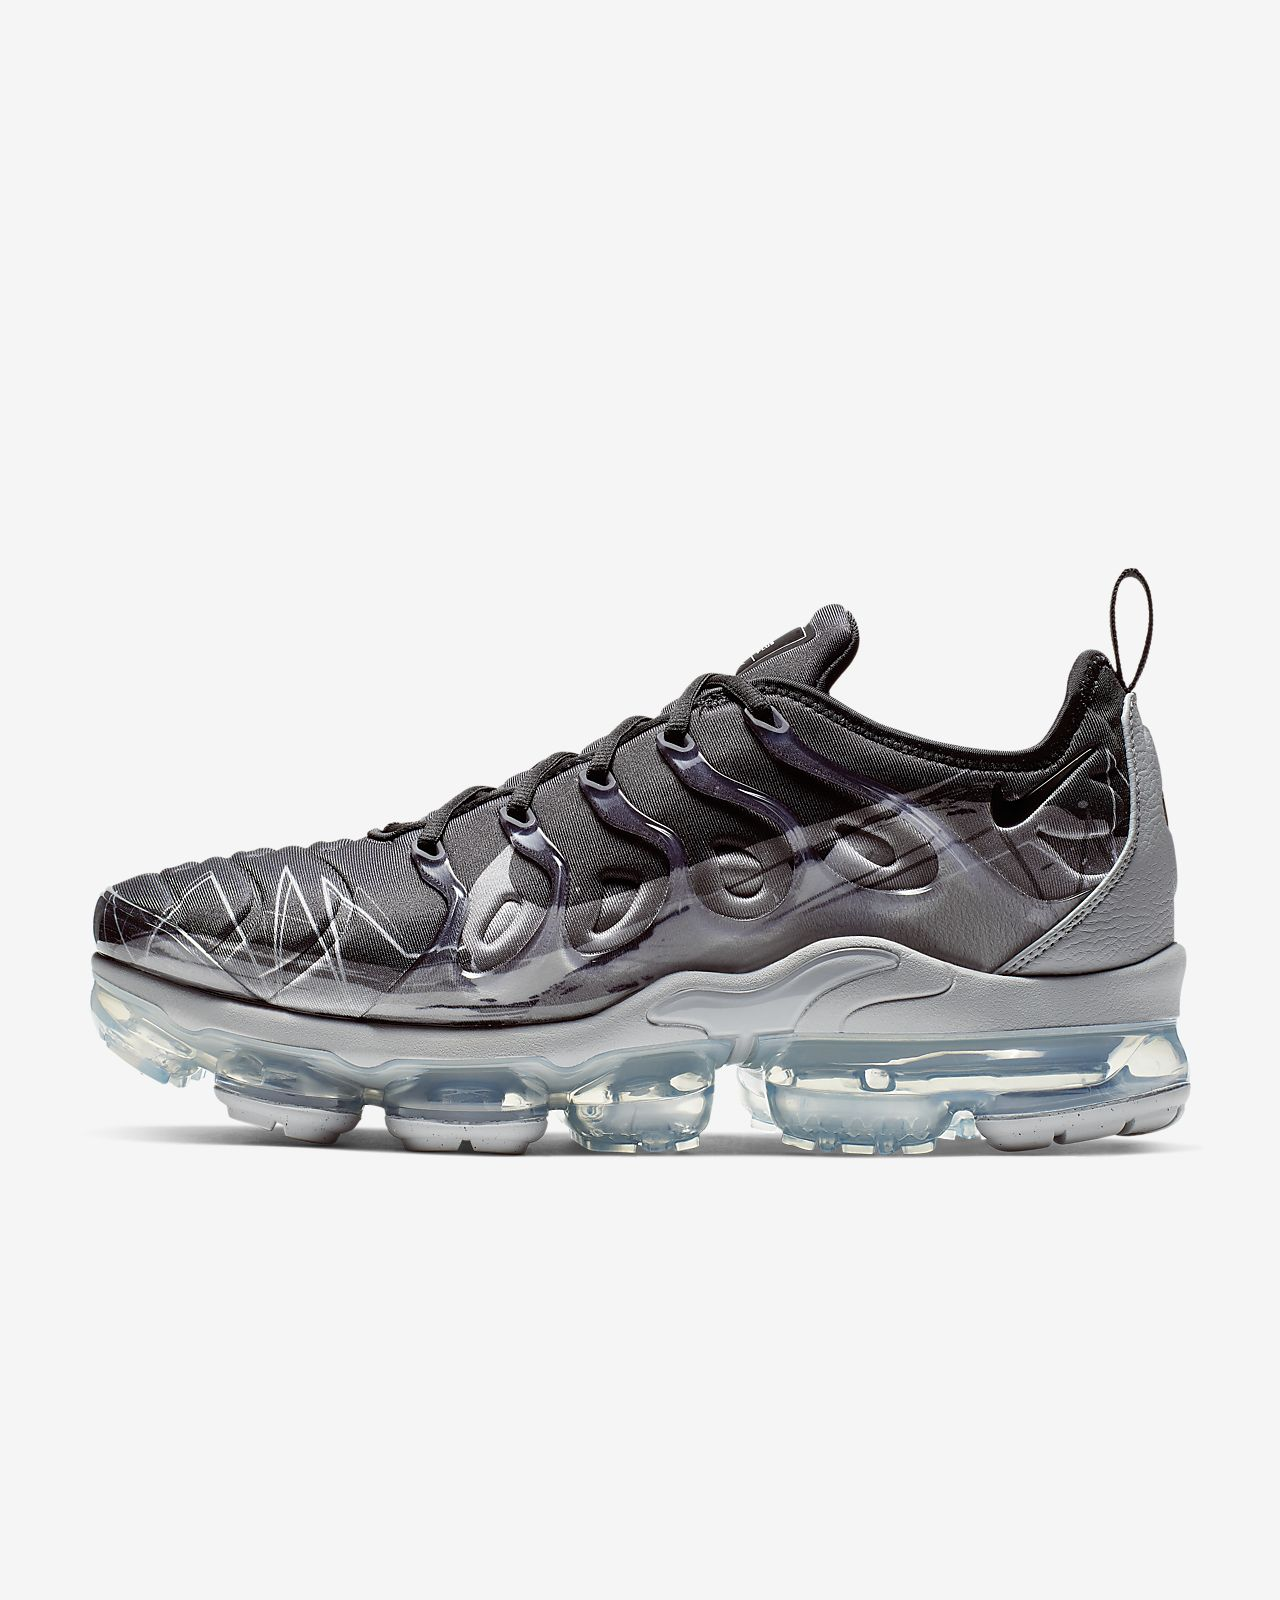 check out 2daa7 586be 210 €. Low Resolution Chaussure Nike Air VaporMax Plus pour Homme Chaussure  Nike Air VaporMax Plus pour Homme